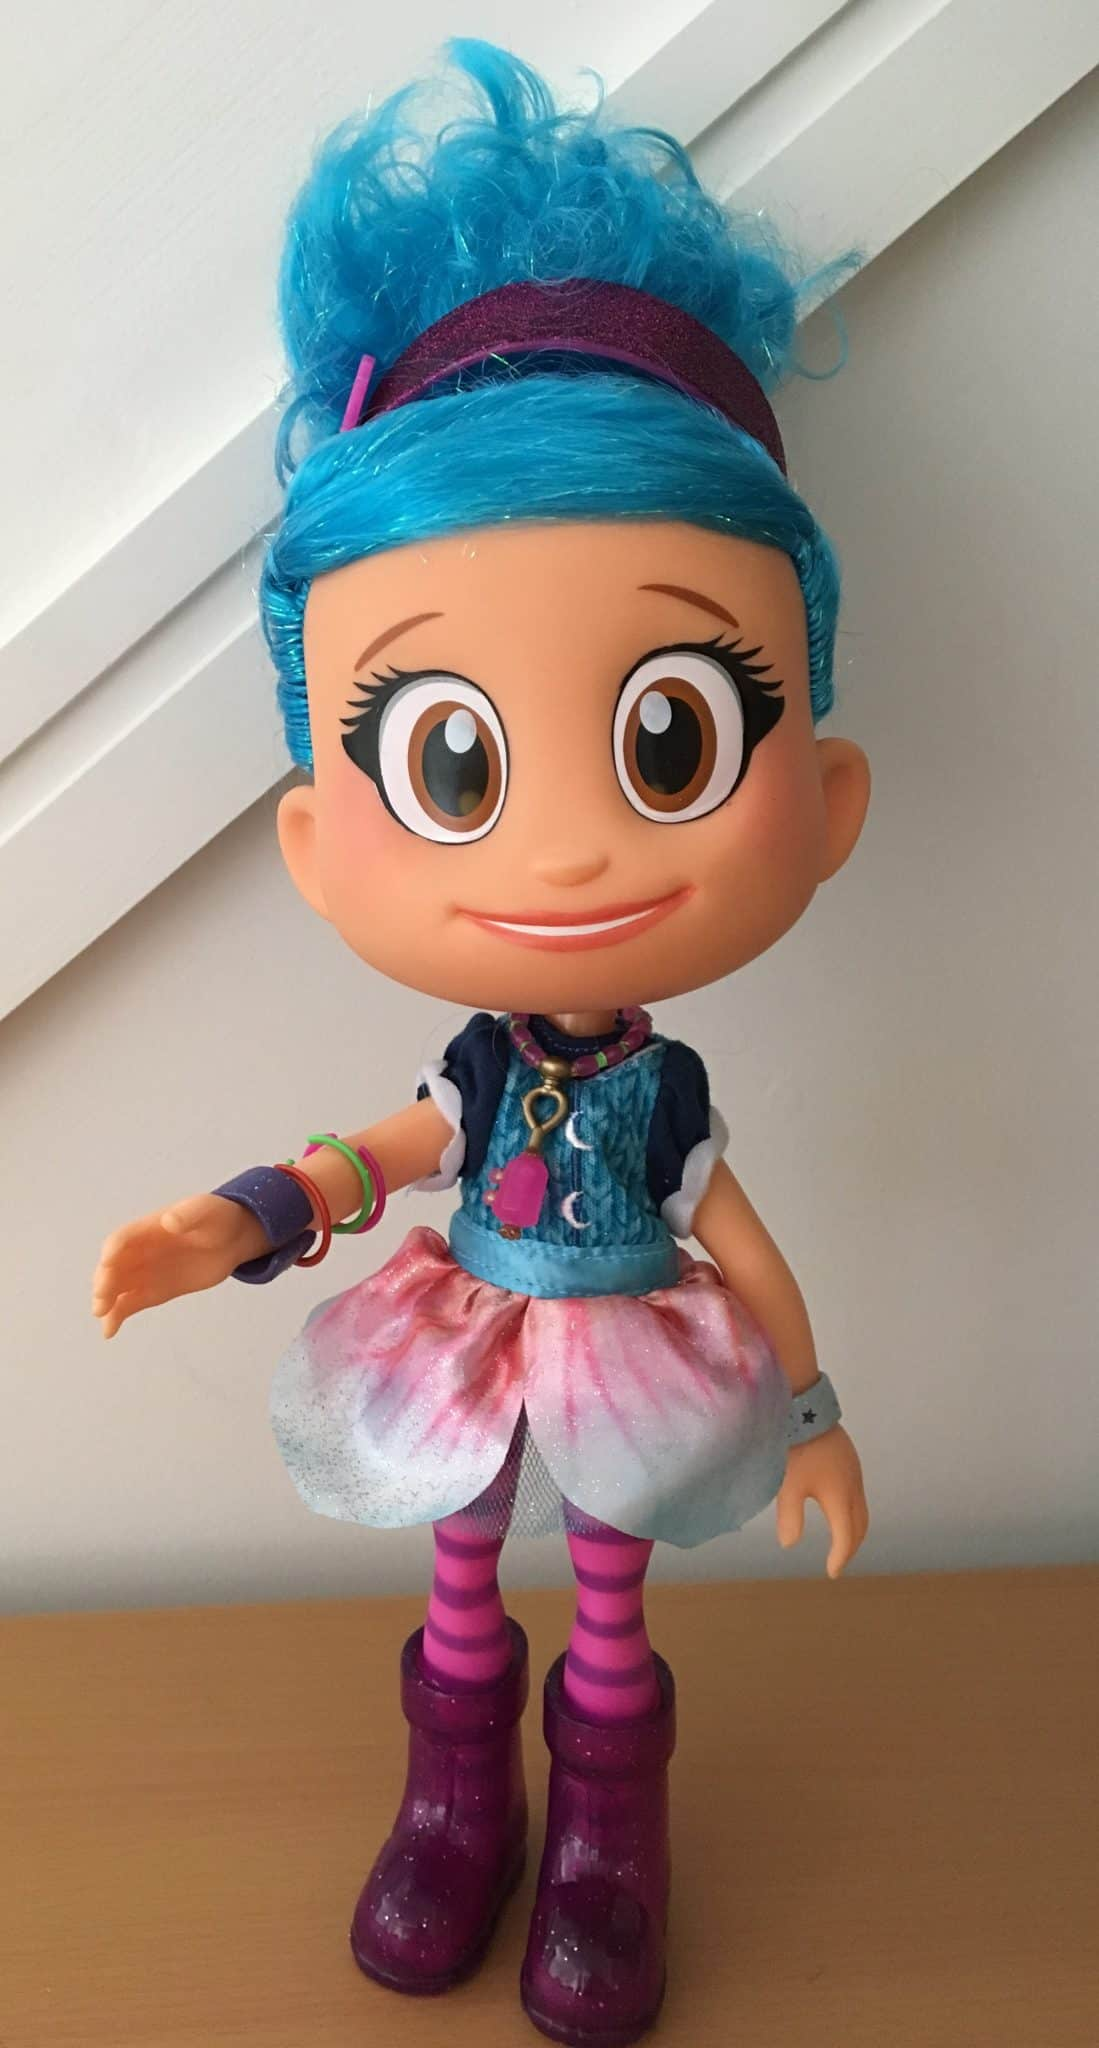 Luna Petunia Doll Review